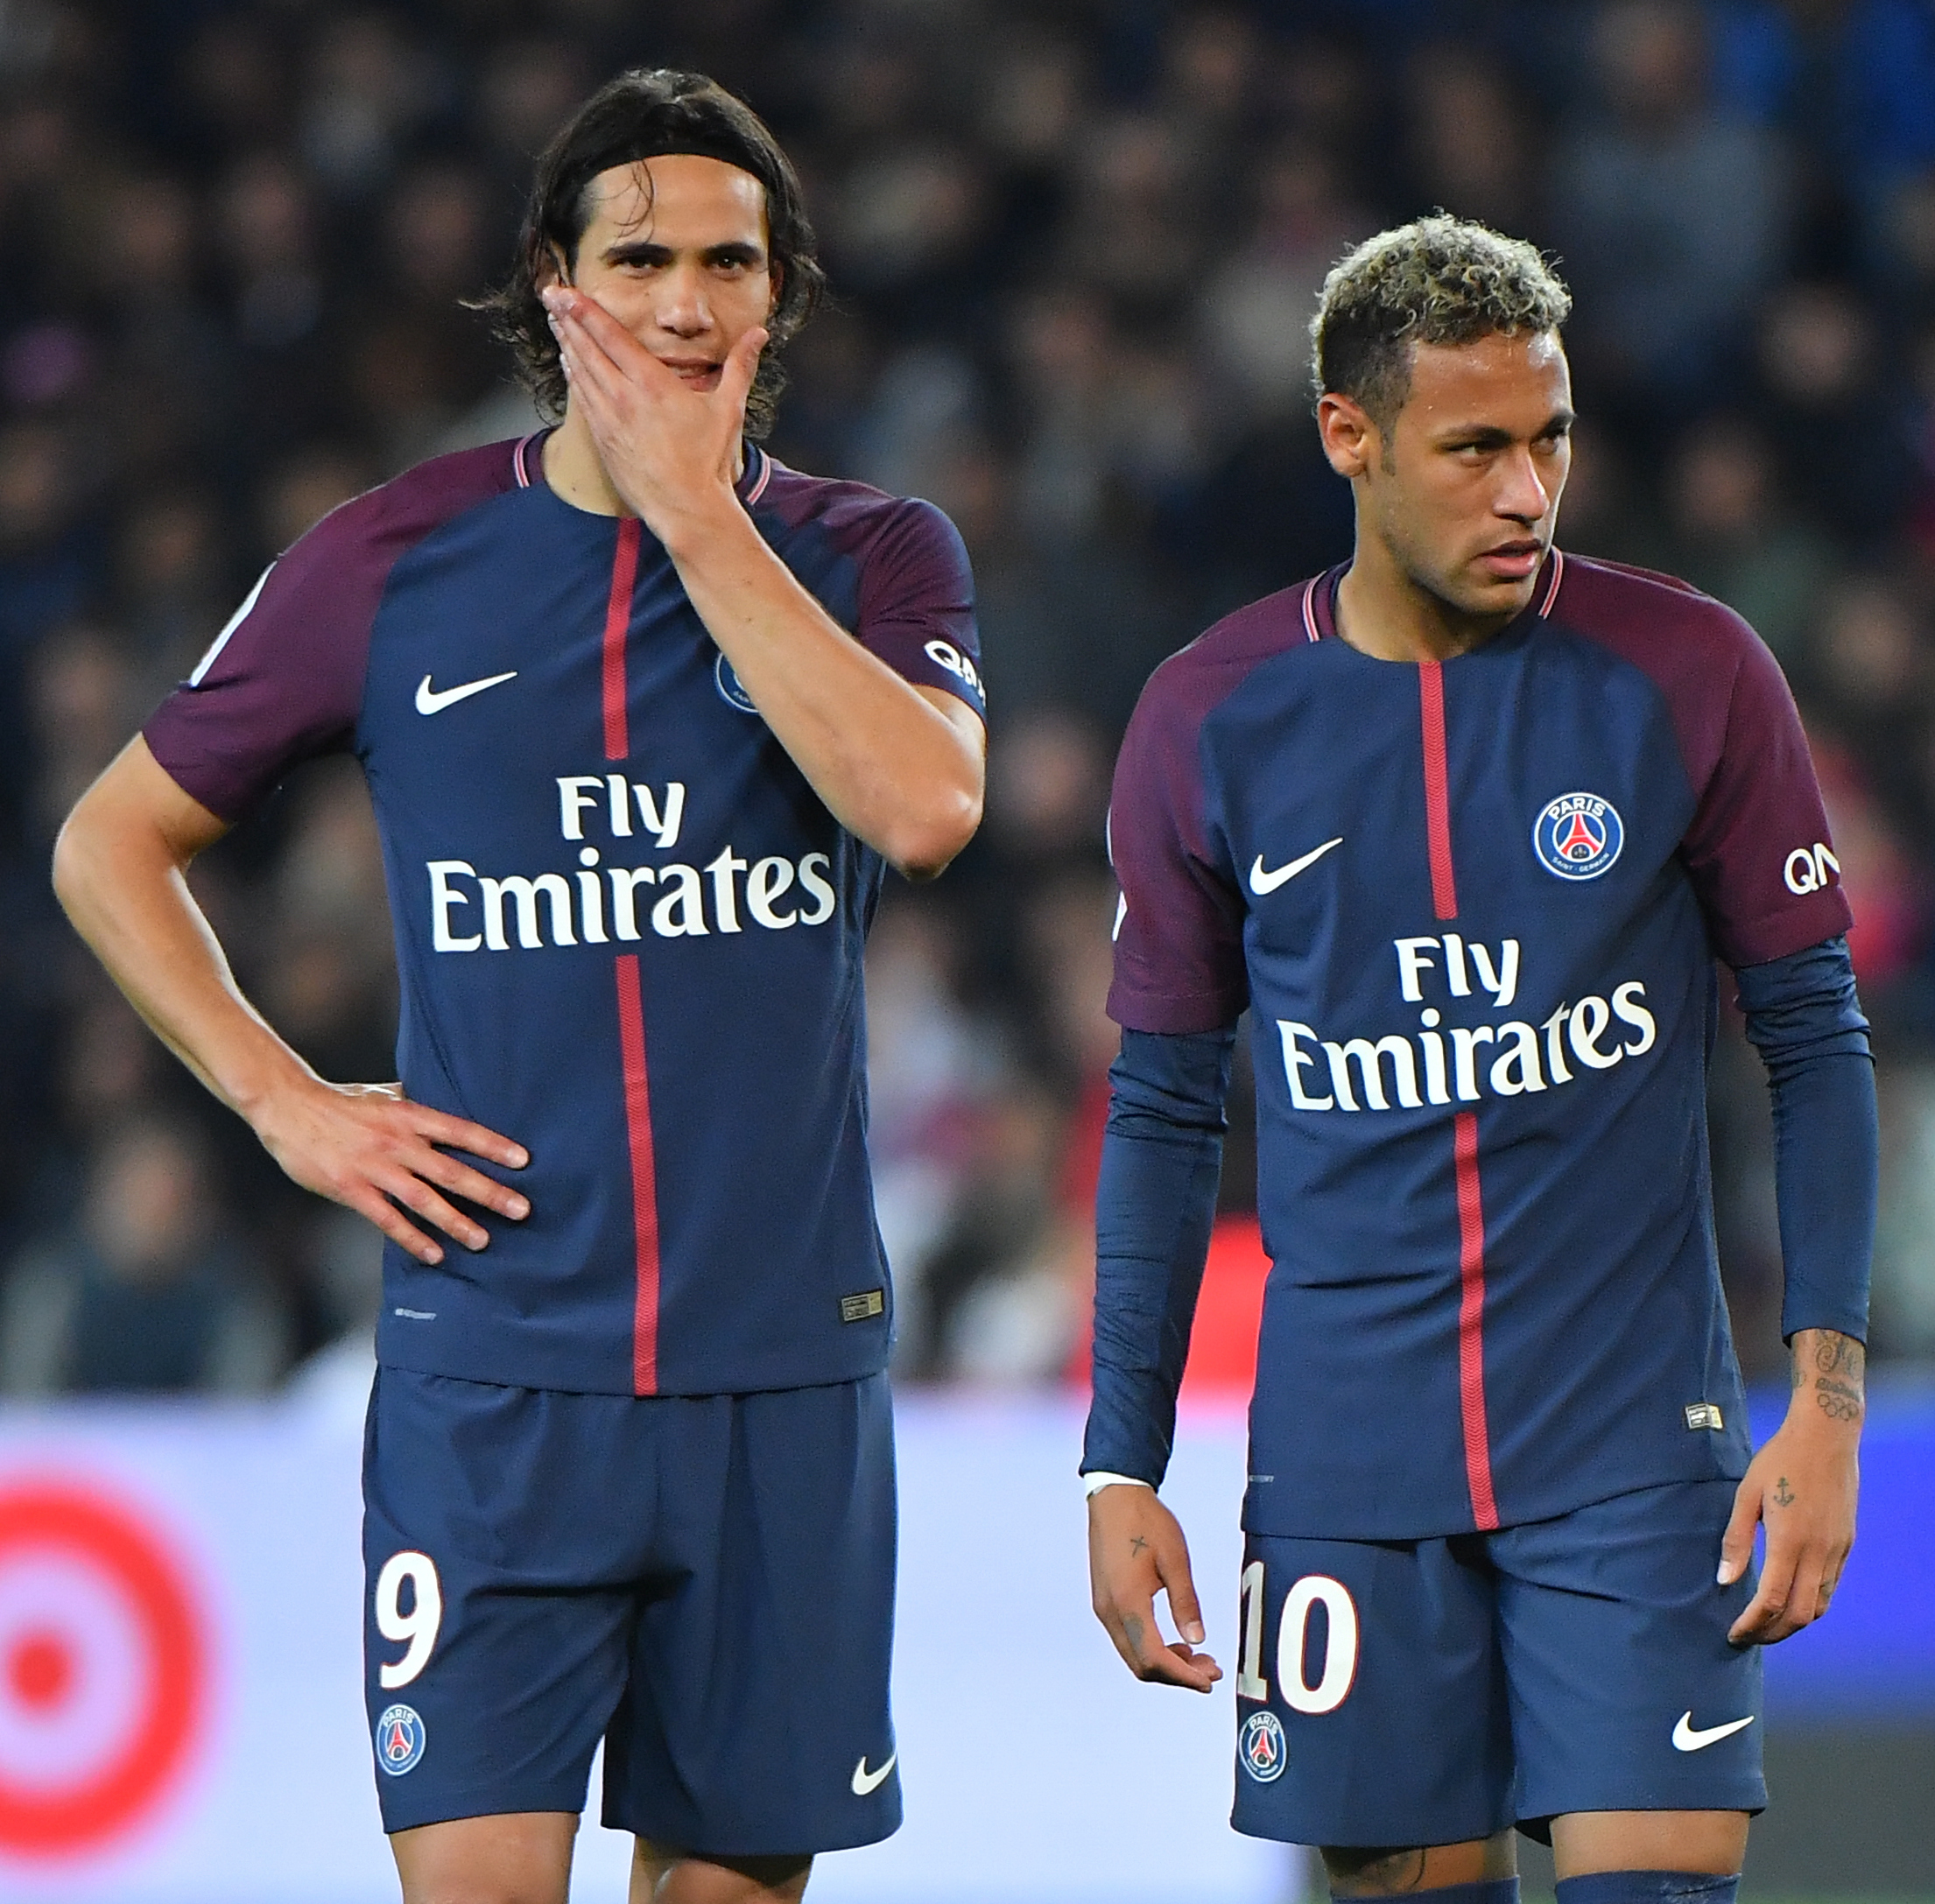 Own goals earn PSG 2-0 home win against Lyon